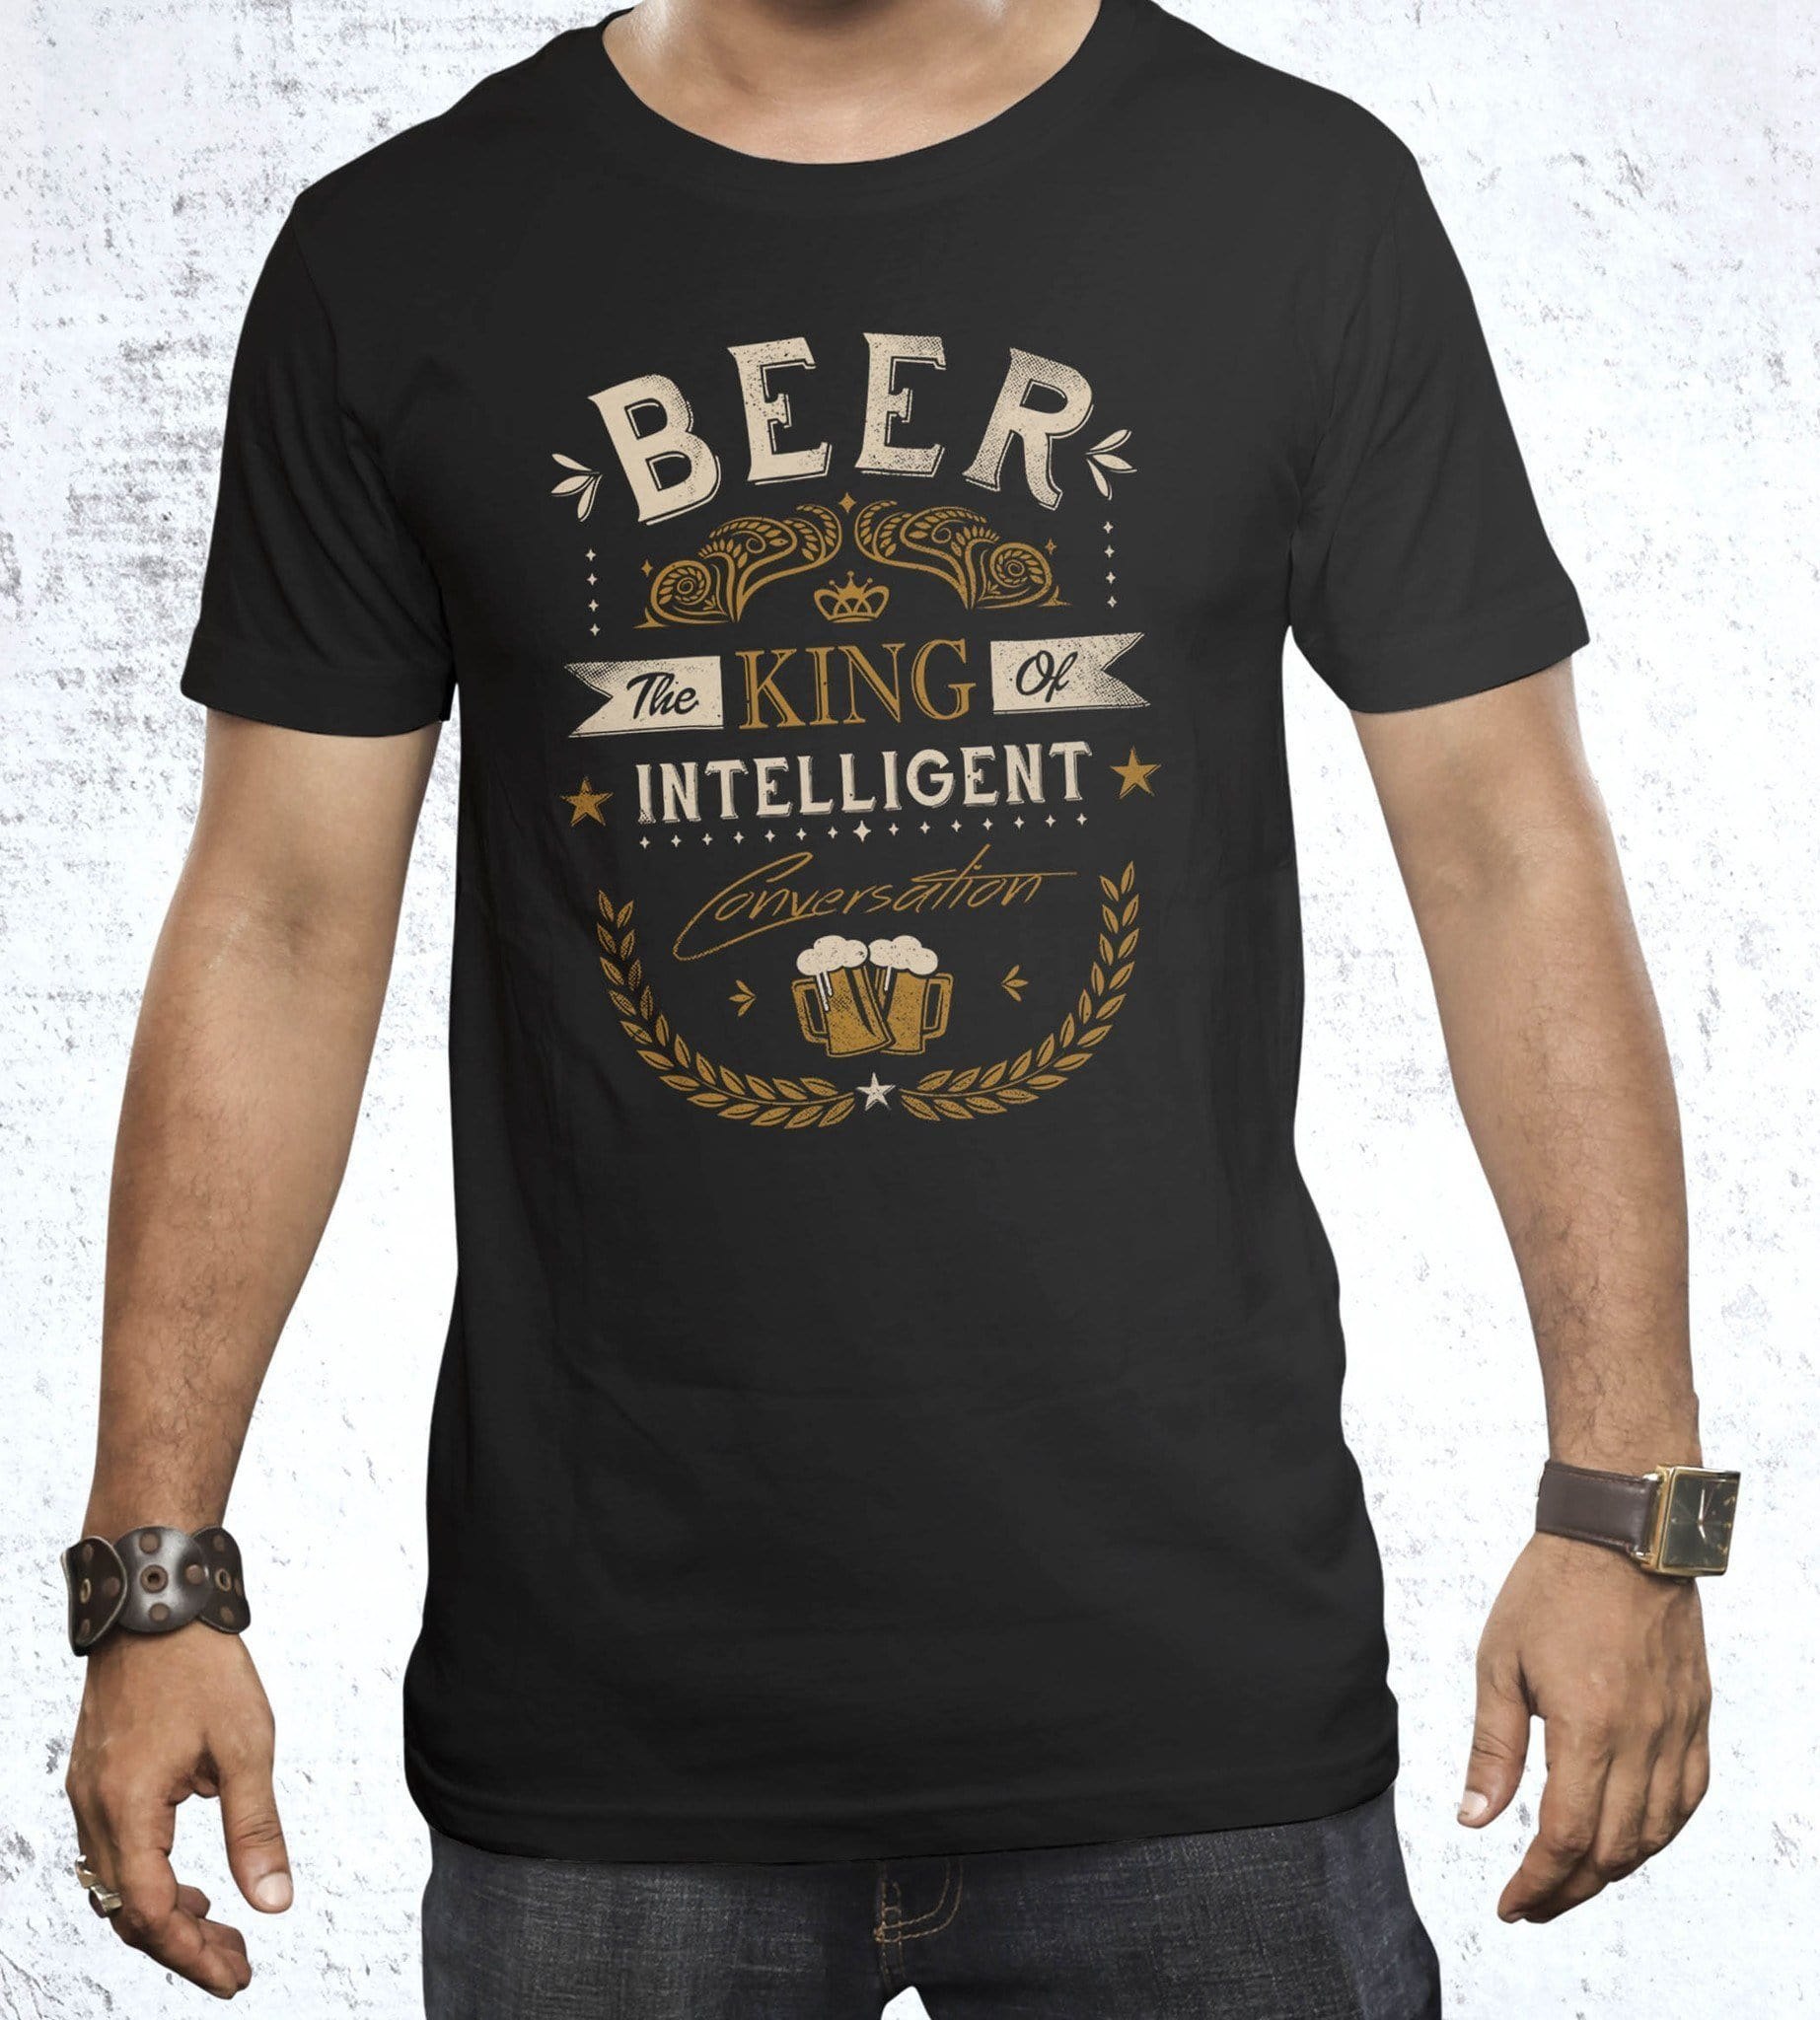 Oh Beer T-Shirts by Grant Shepley - Pixel Empire